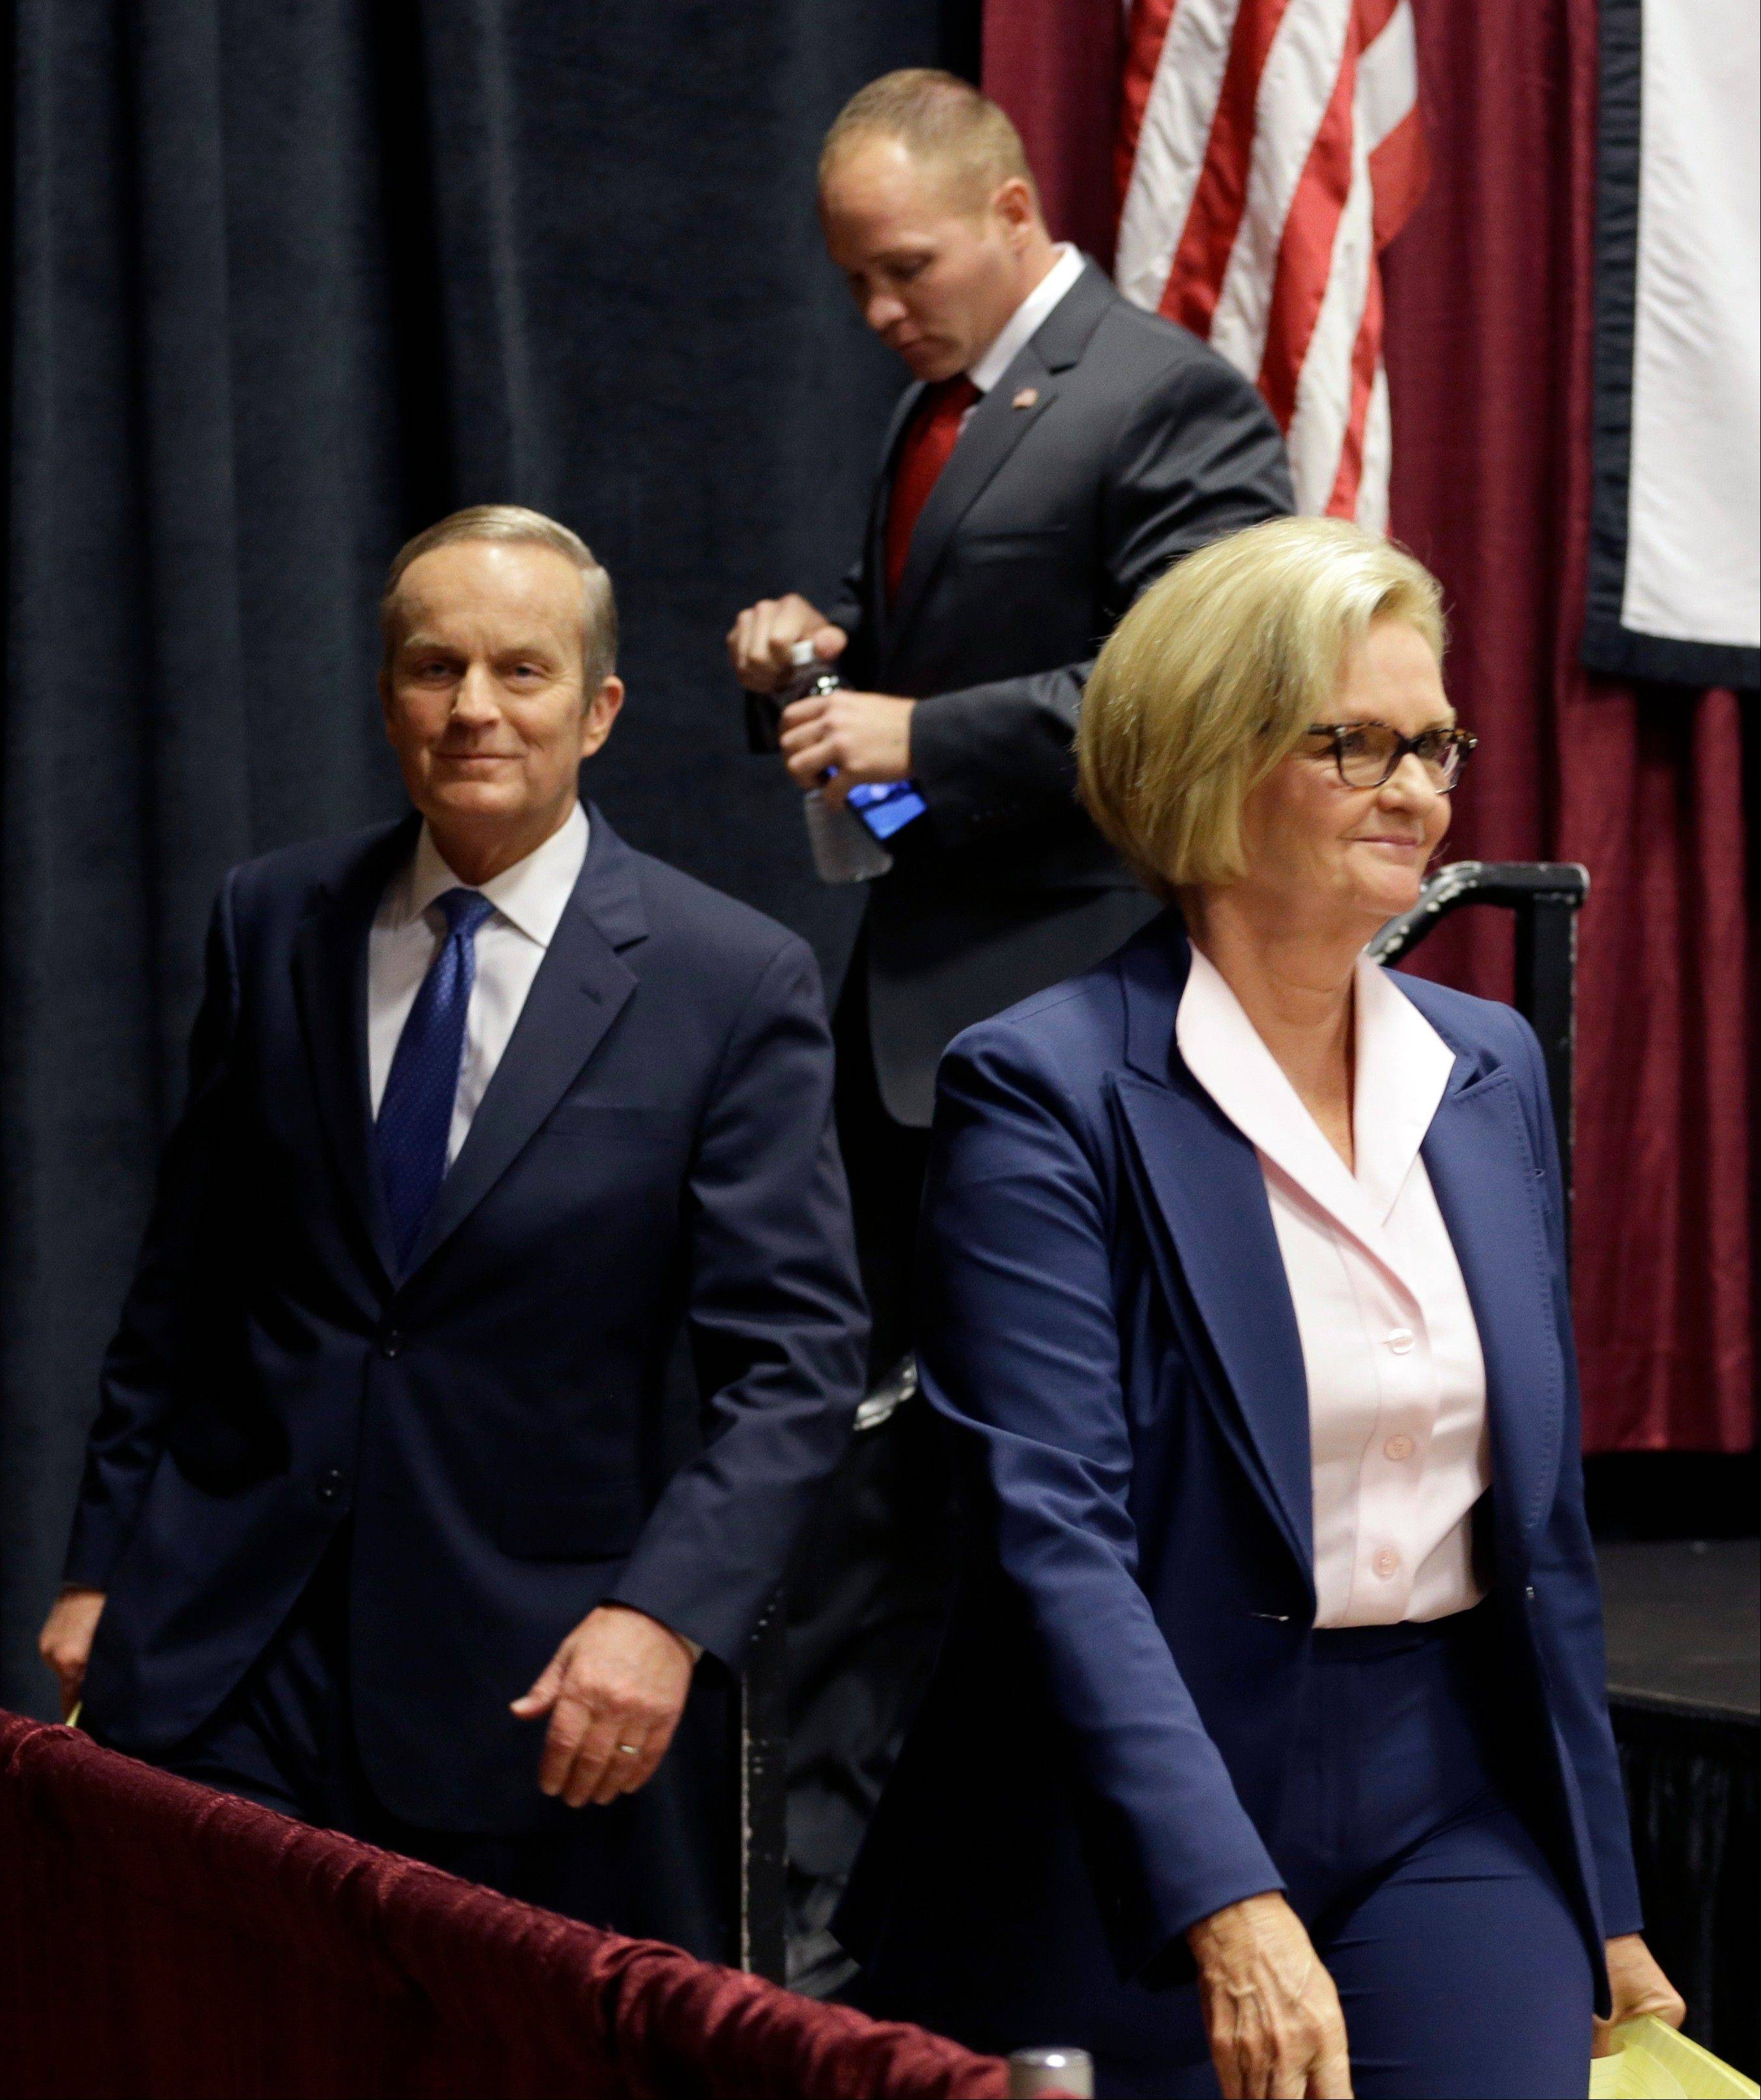 Democratic Sen. Claire McCaskill, right, walks off the stage with challengers Republican Todd Akin, left, and Libertarian Jonathan Dine following their debate in the Missouri Senate race last Friday.